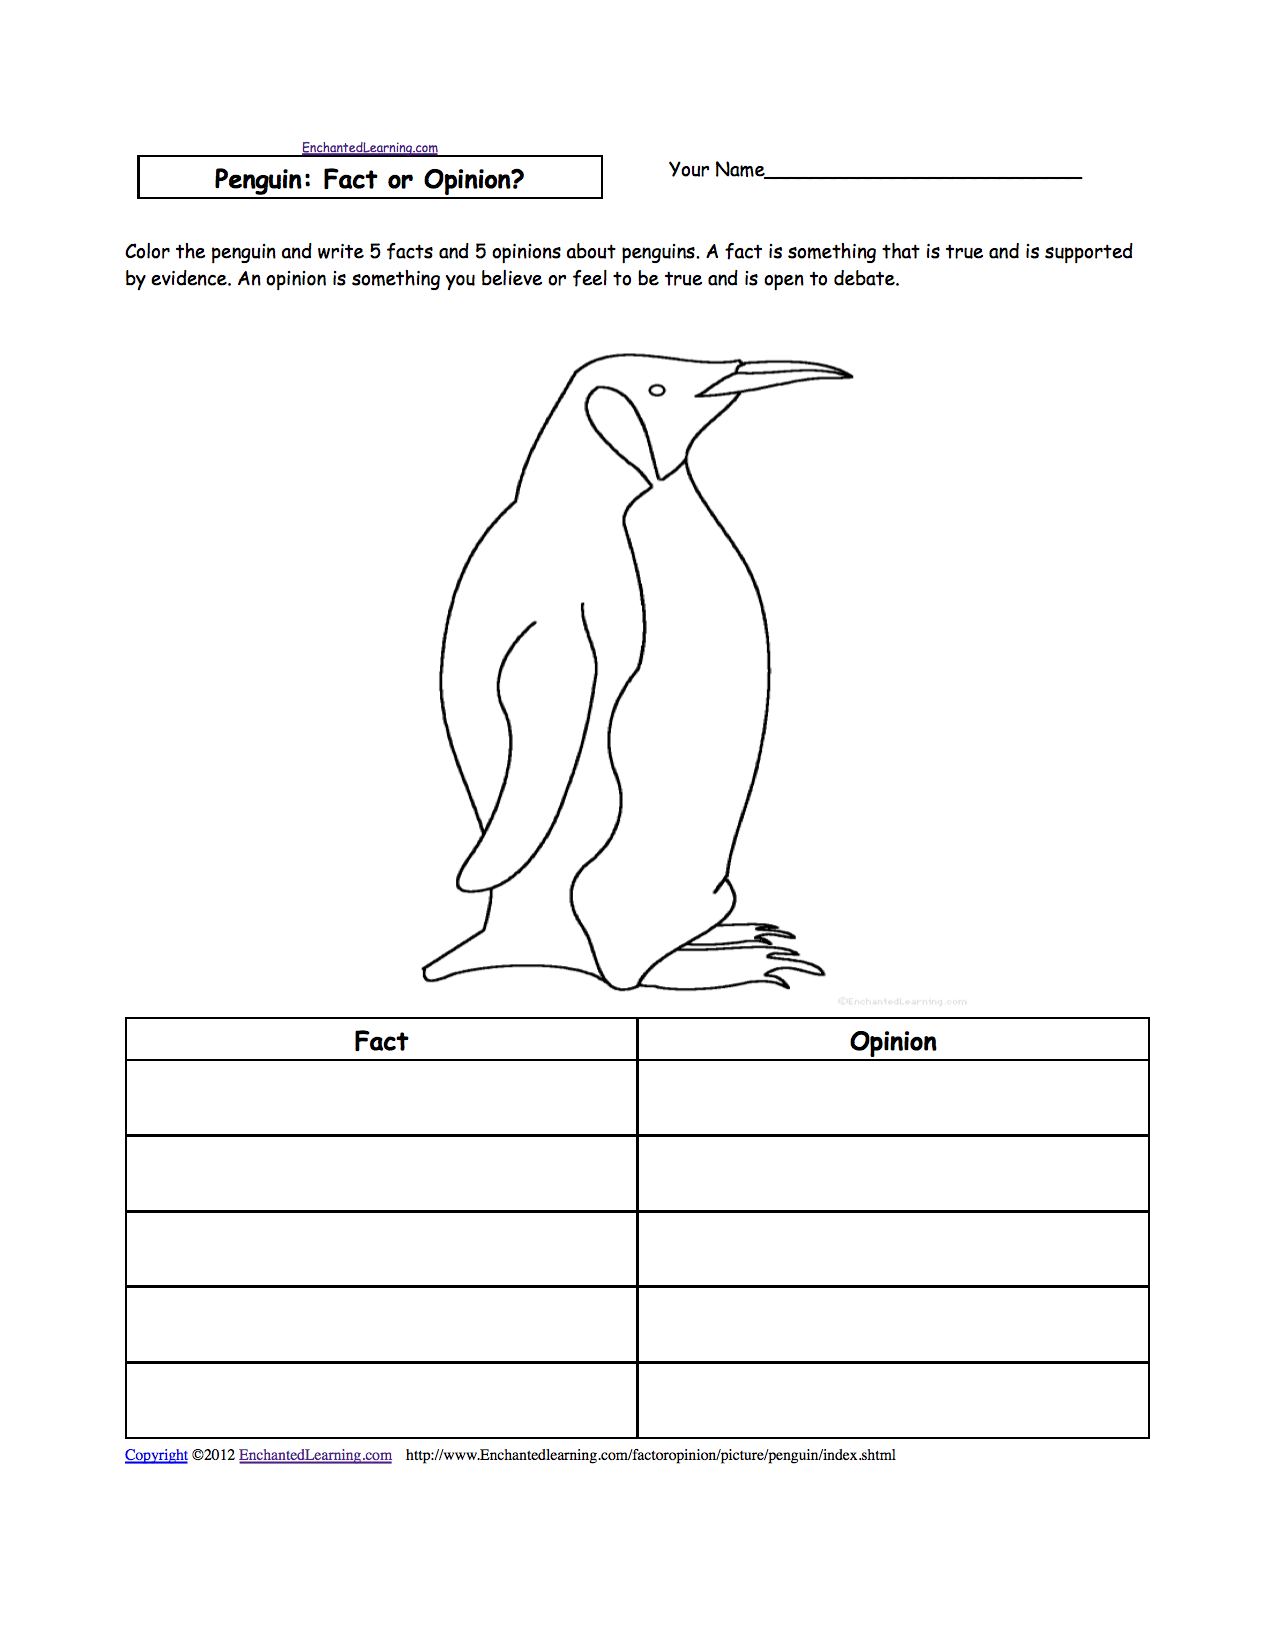 Printables Penguin Worksheets penguins at enchantedlearning com penguin fact or opinion